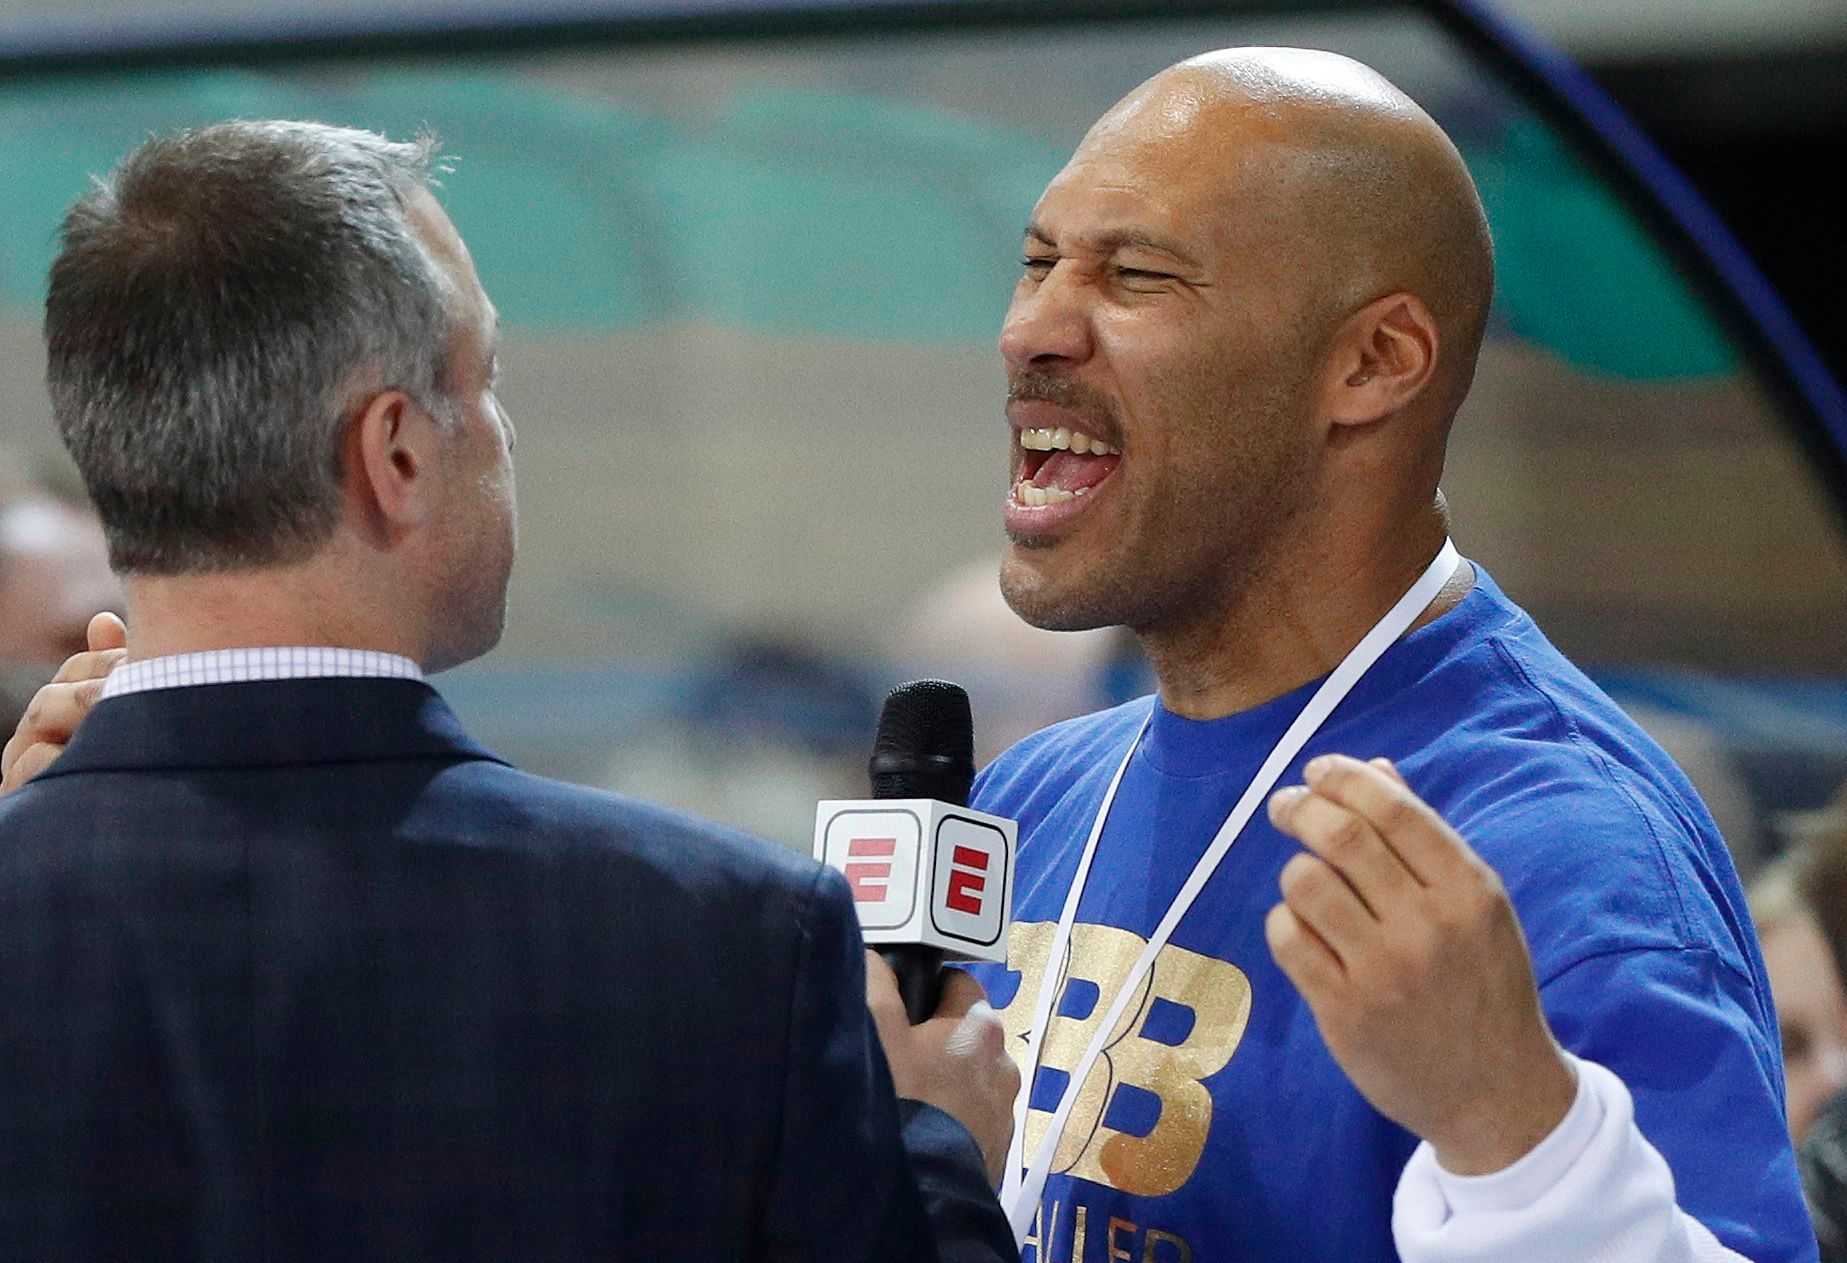 LaVar Ball Blasts the Detroit Pistons After Son LiAngelo Ball is Cut